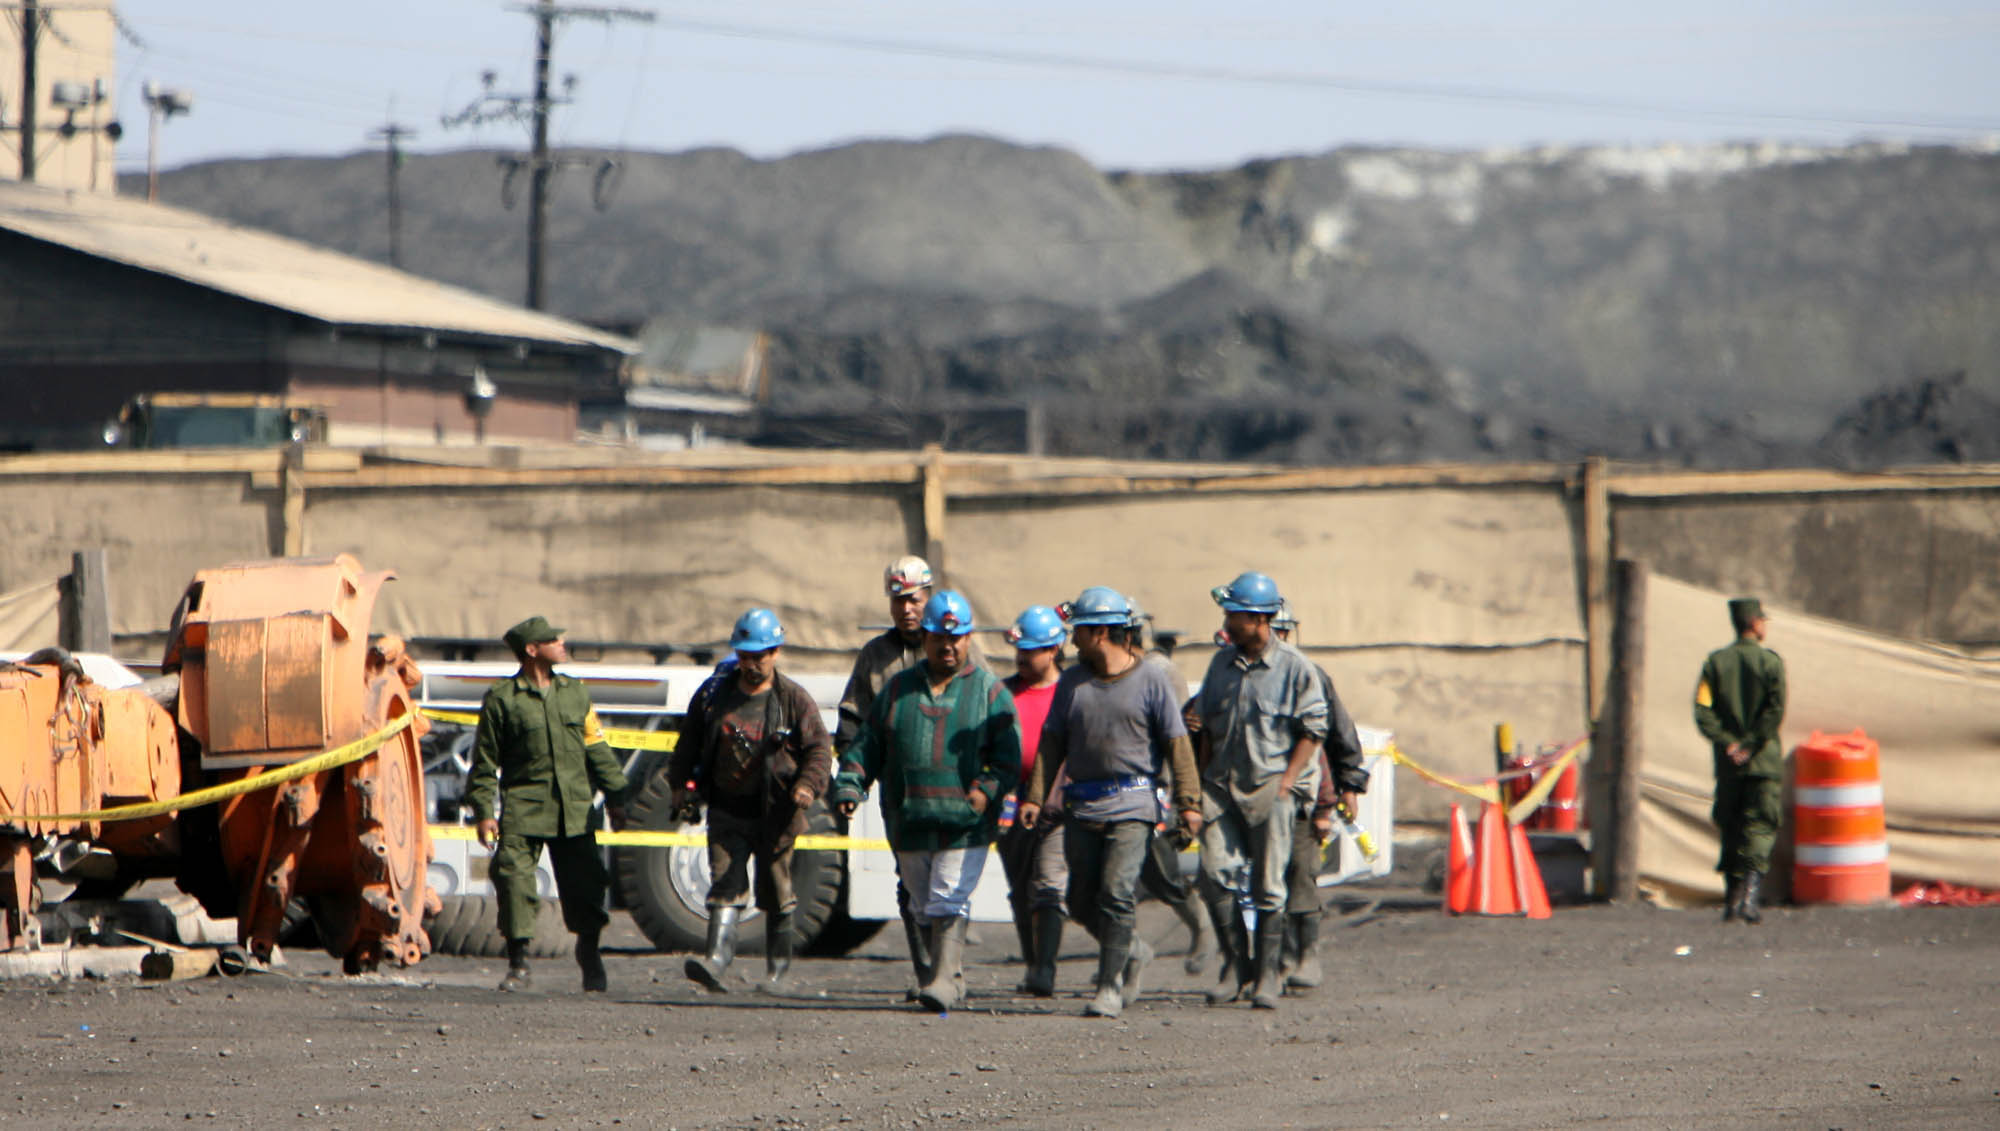 The scene in front of the Pasta de Conchos coal mine in San Juan de Sabinas in the Mexican state of Coahuila Tuesday where workers put up a cloth barricade Tuesday morning in front of the entrance to the mine. Family members waited outside the Pasta de Conchos coal mine Tuesday. In the Early morning on Sunday 65 miners were trapped 163 meters below ground after an explosion.Sharón Steinmann / Houston Chronicle